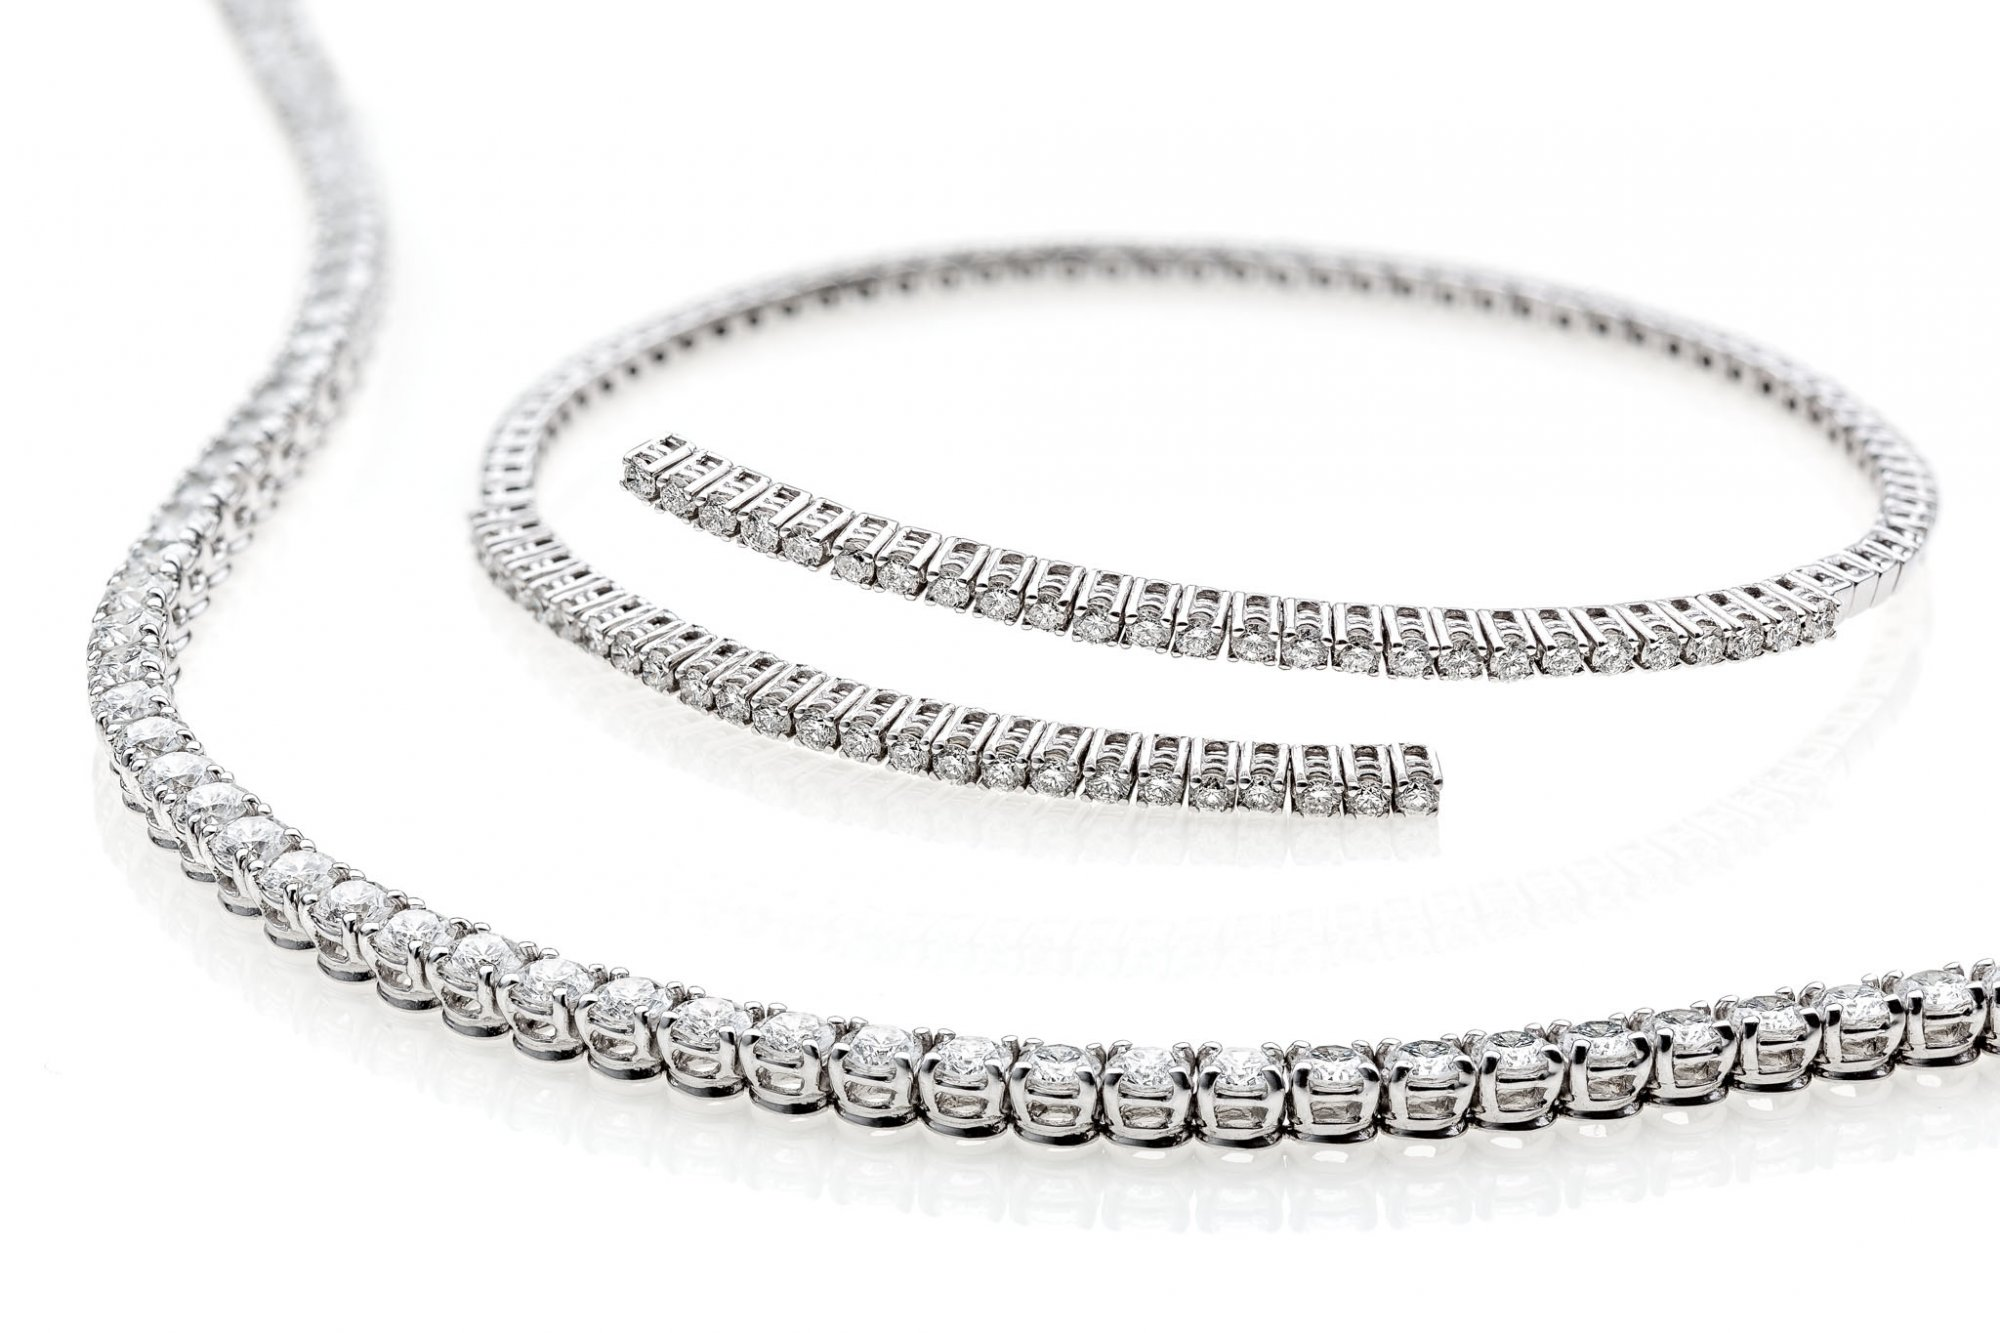 Tennis bracelet in 18 KT white gold white round brilliant cut diamonds ct.2.10 VVS G color